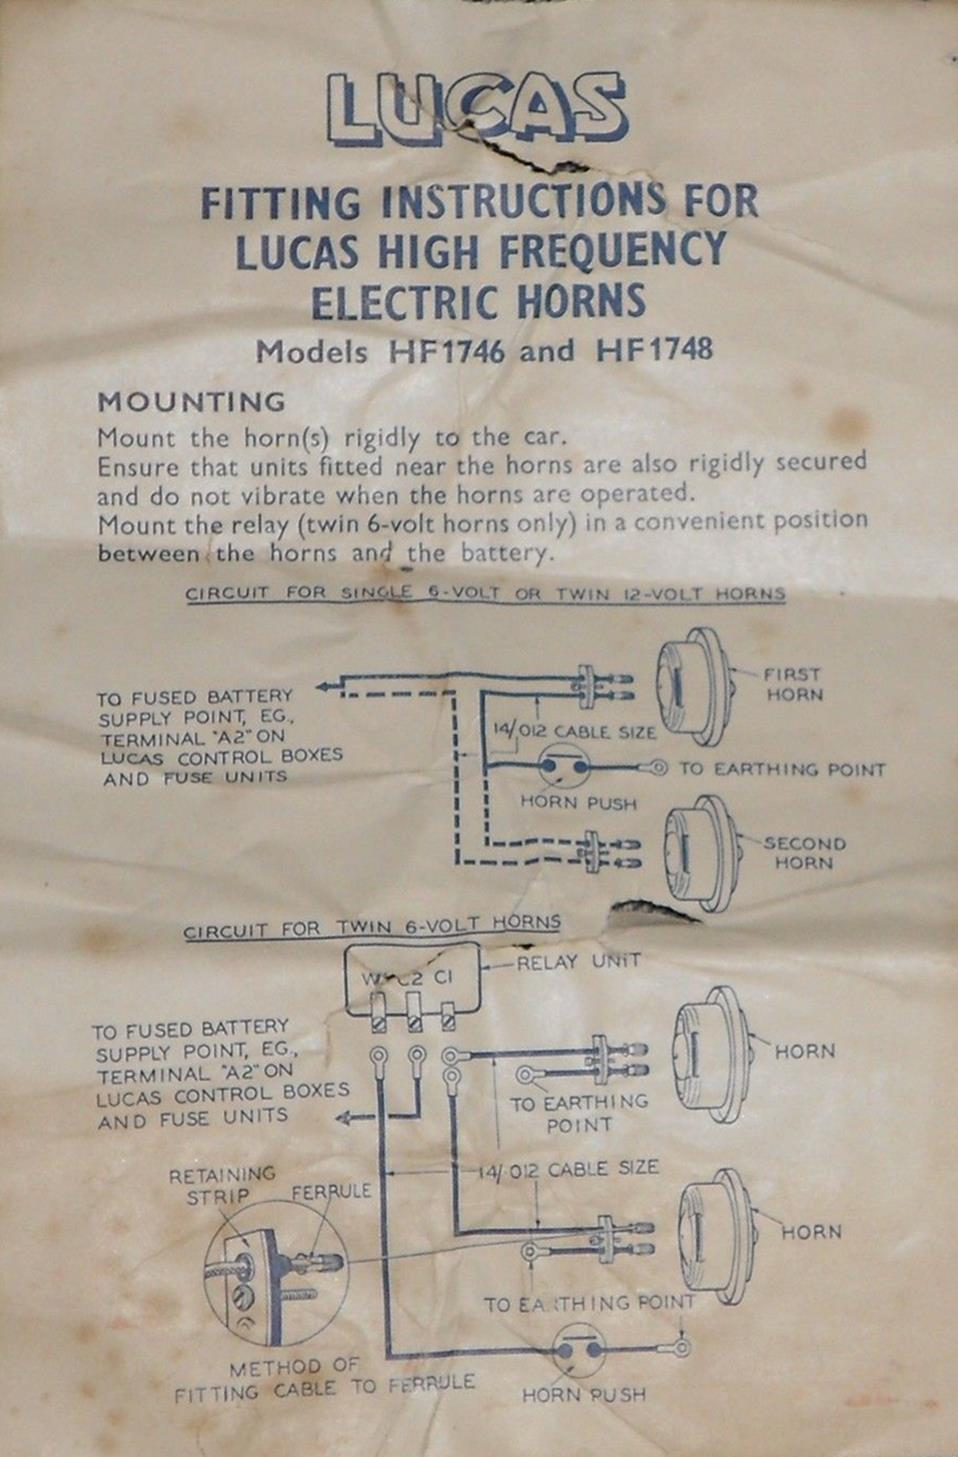 Lucas High Frequency Horn Hf1748 On Jaguars 1953 To 1961 Jaguar Universal Car Wiring Diagram Installation Instruction Fitting Instructions Leaflet For